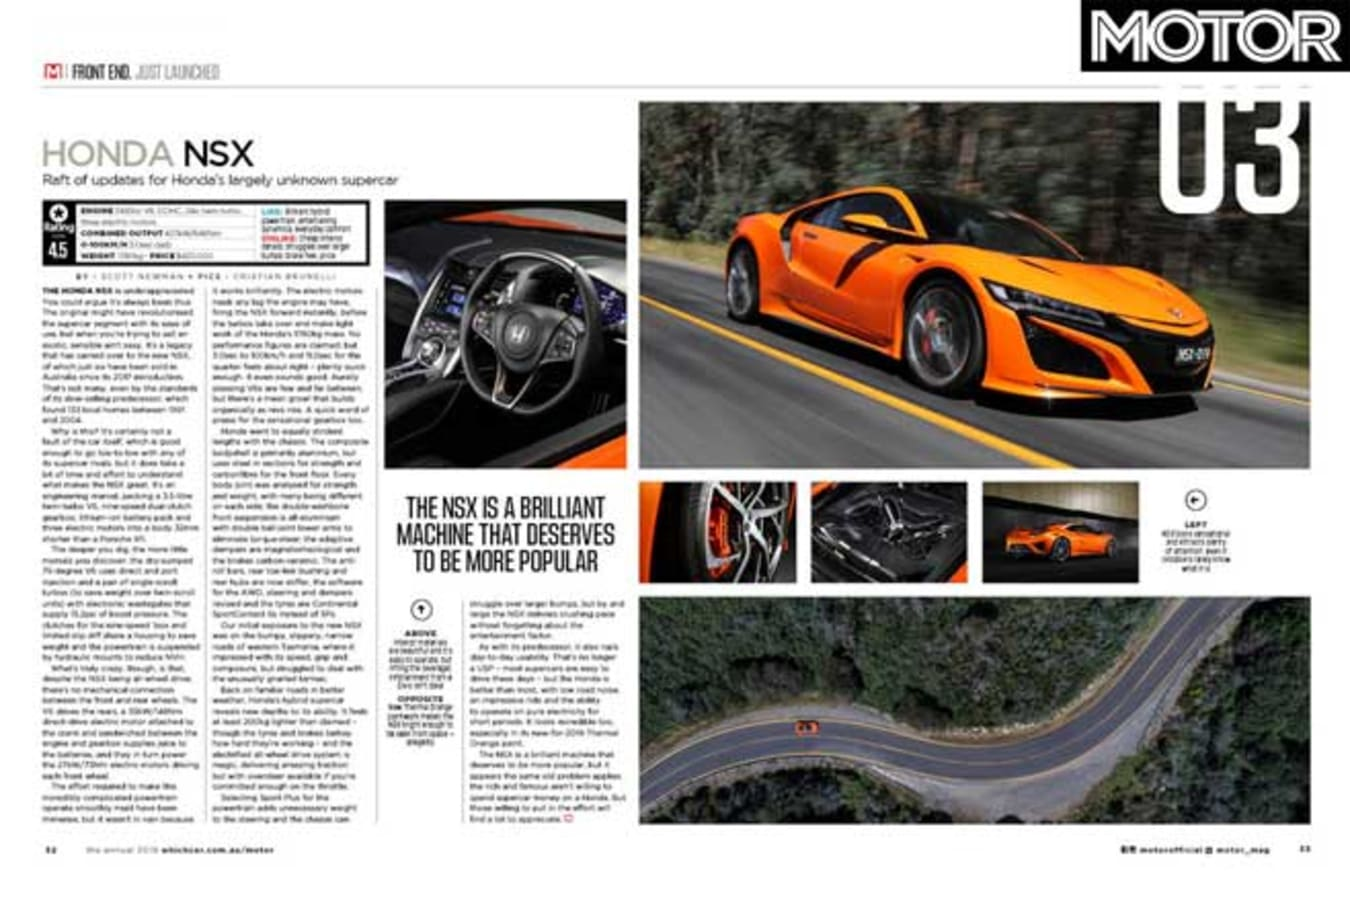 MOTOR Magazine Annual 2019 Issue First Drive Jpg